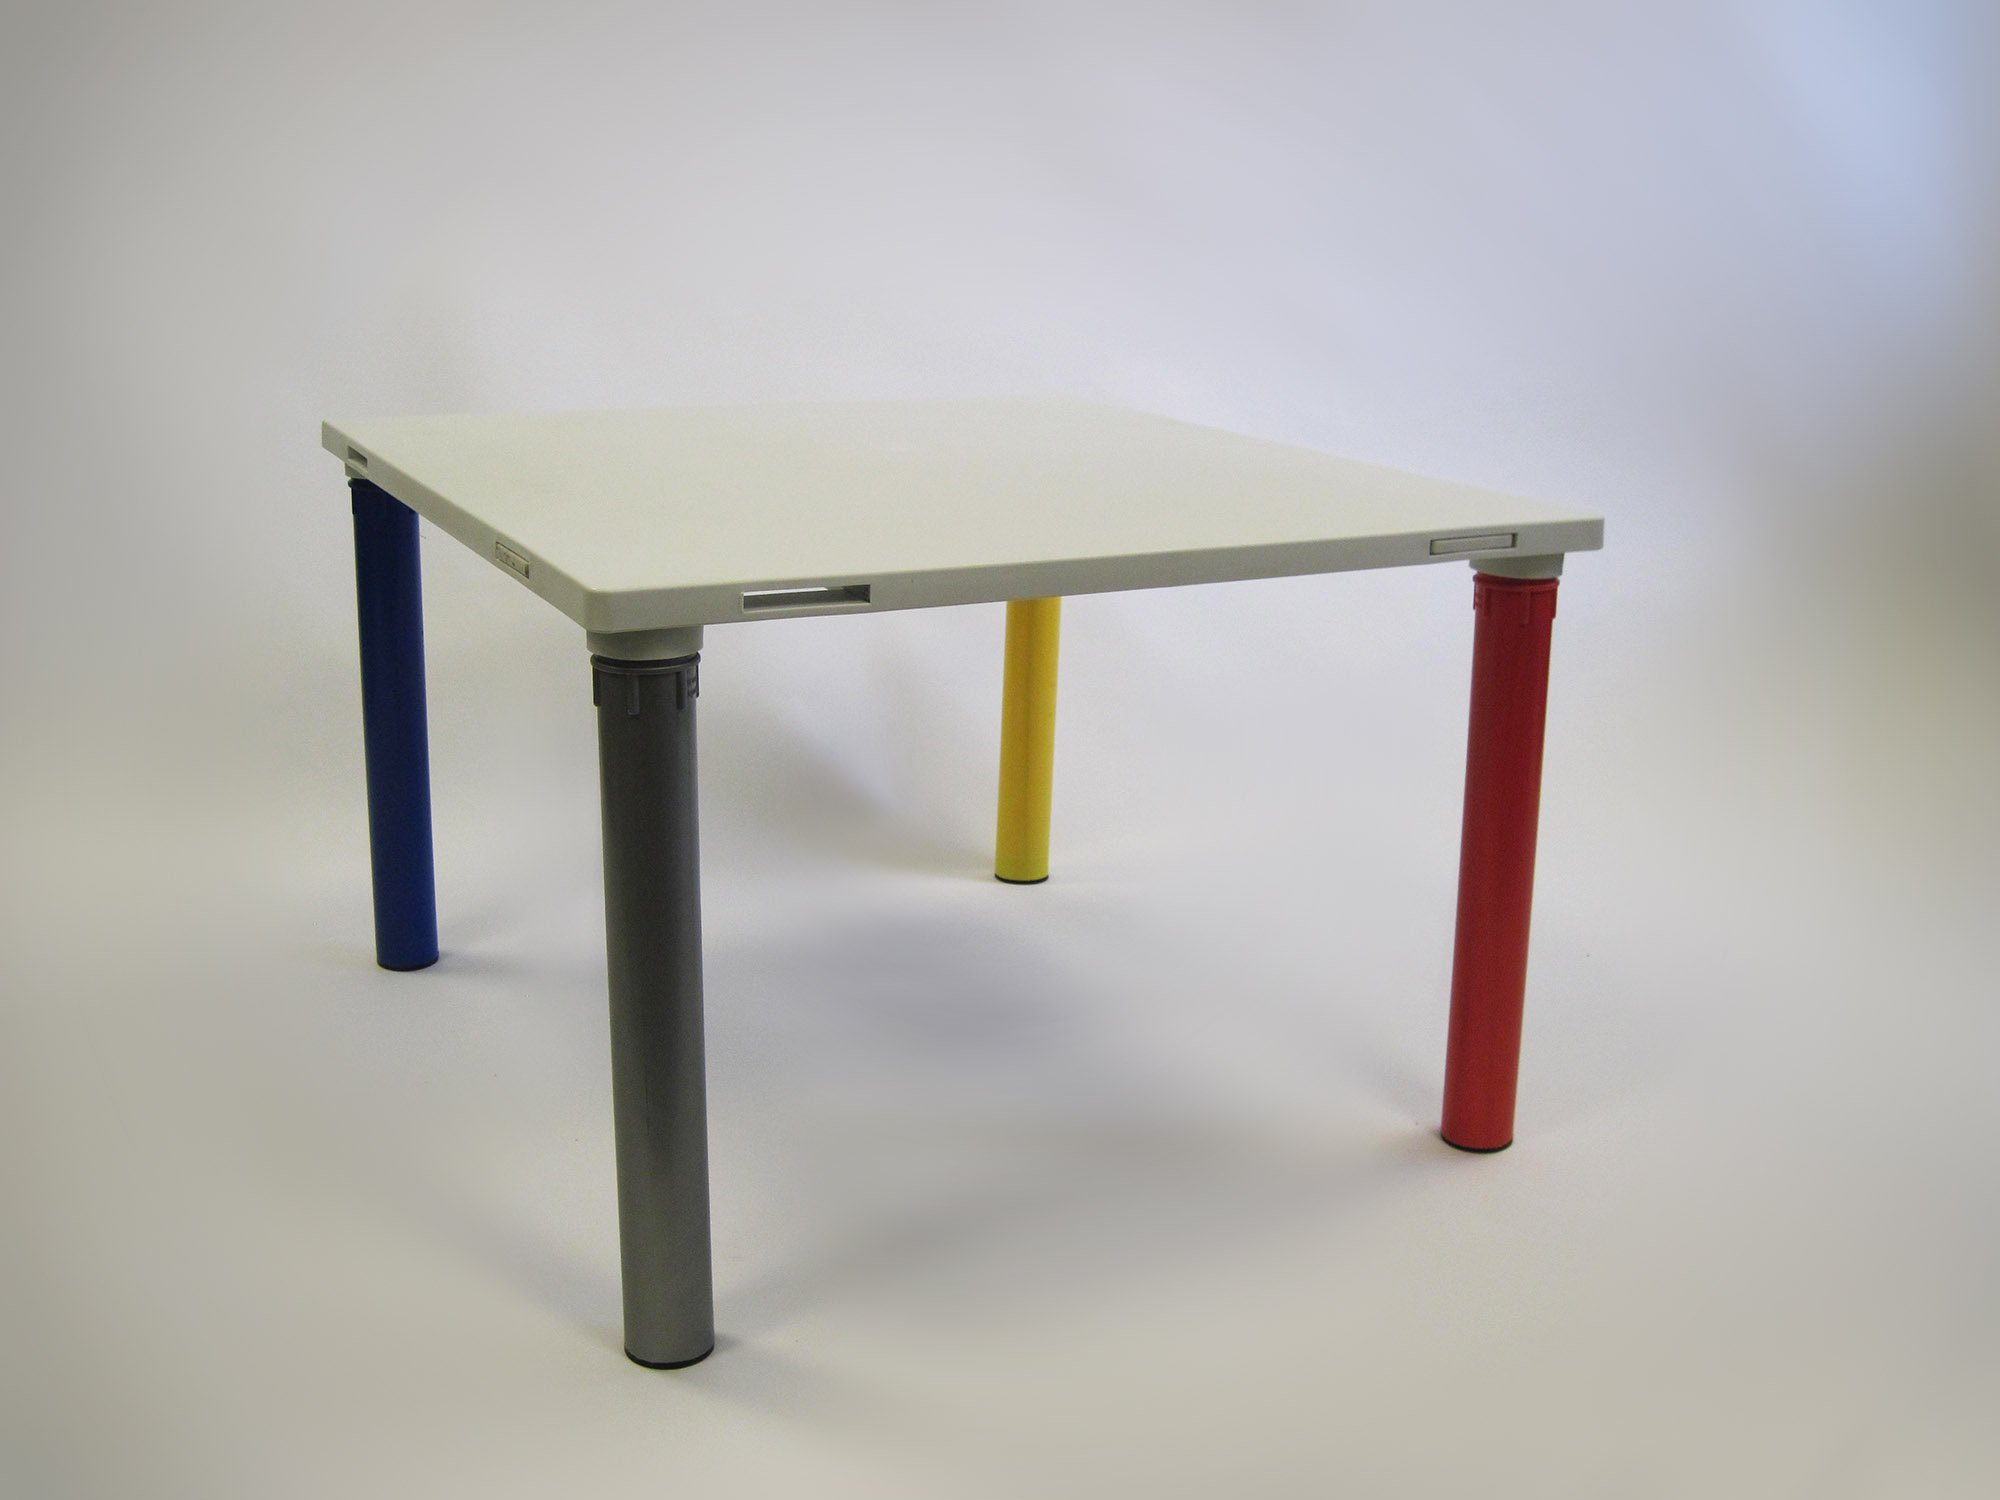 modular linking classroom table for kids, 30''x32''x20''H white reinforced resin table top, multicolored resin legs